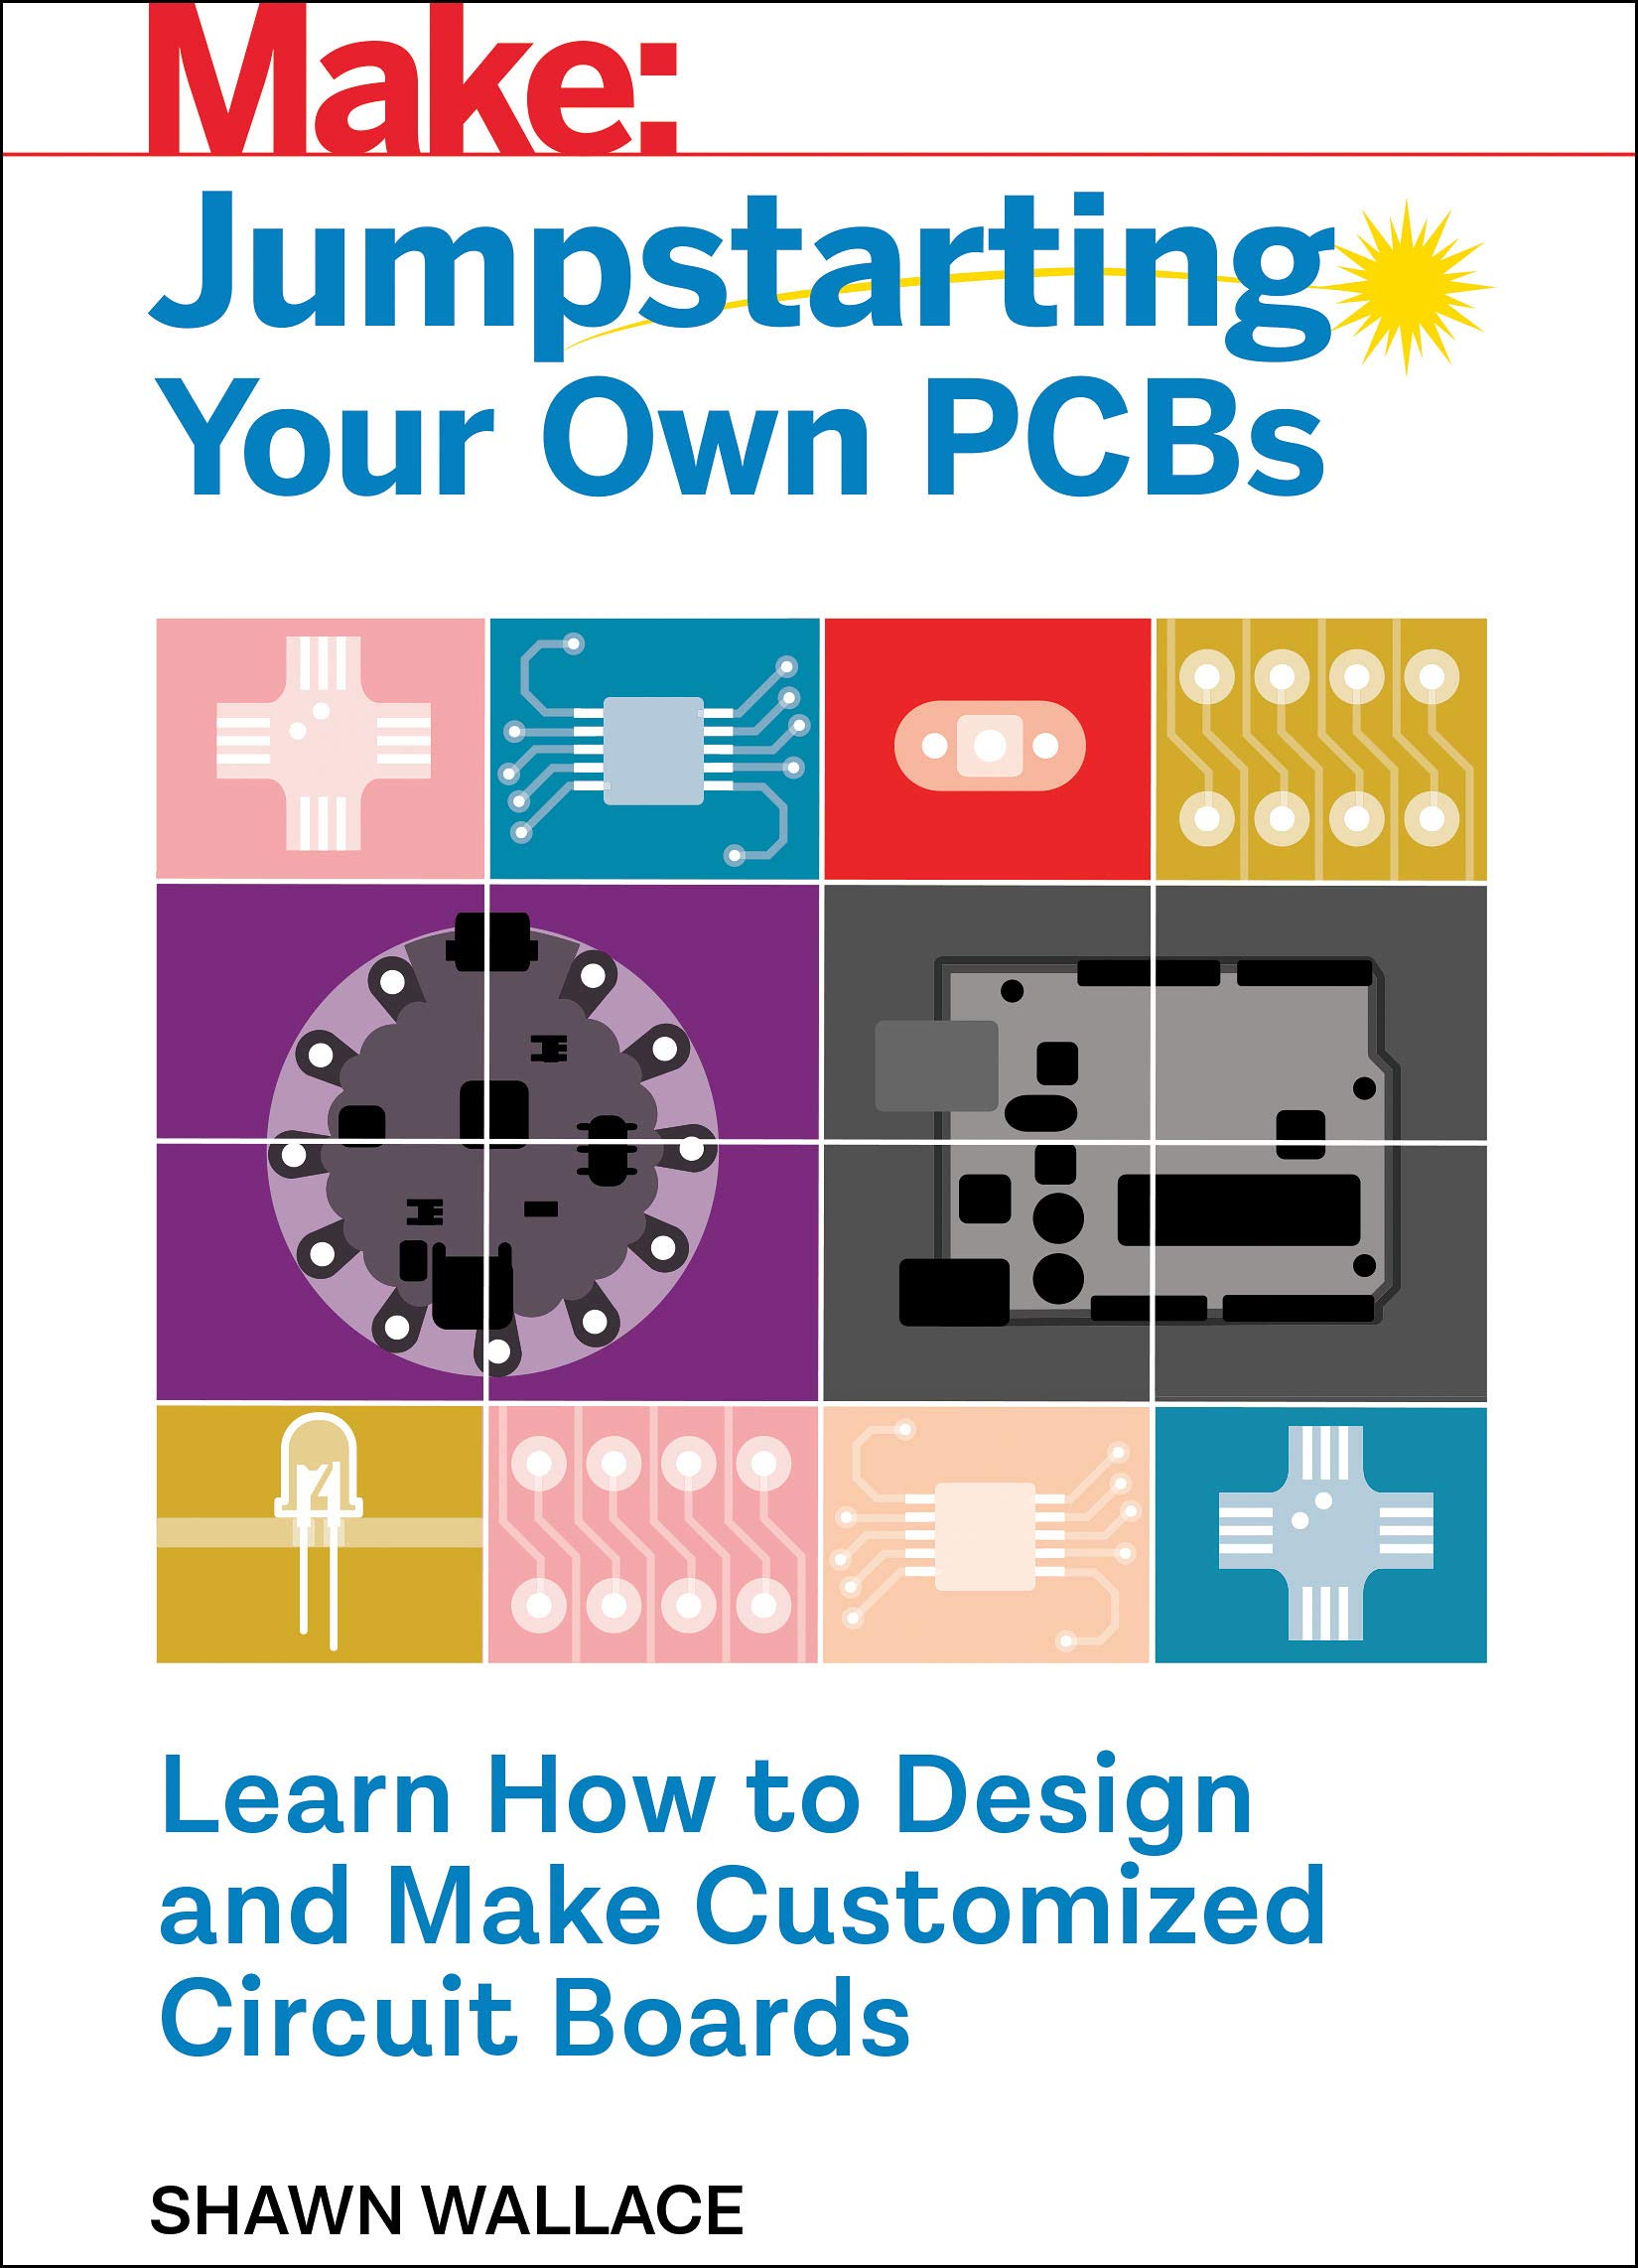 Jumpstarting Your Own Pcb Learn How To Design And Make Customized Circuit Board Images Boards Shawn Wallace 9781680455120 Books